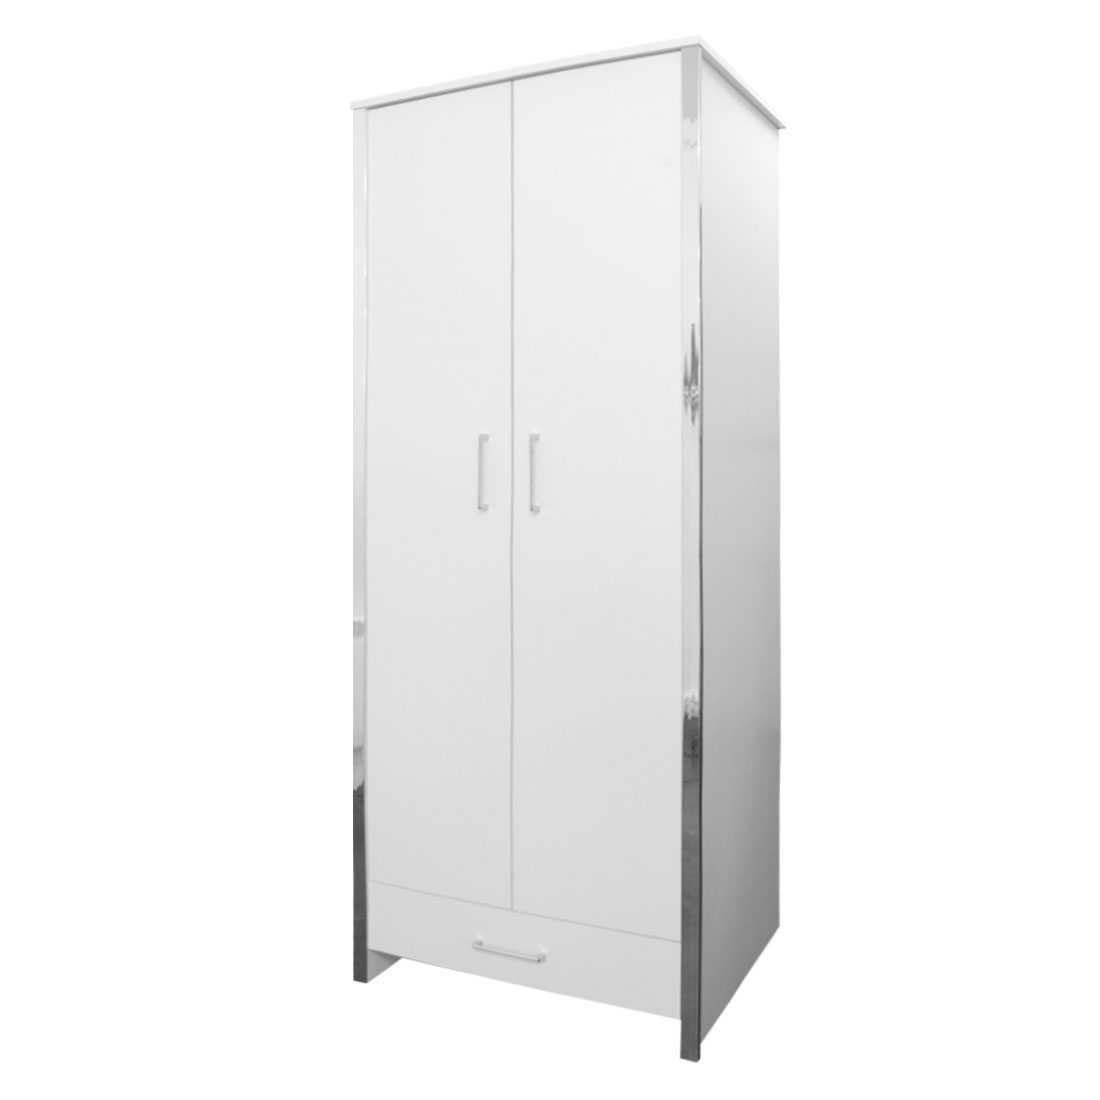 Gosport - 2 Door 1 Drawer Wardrobe